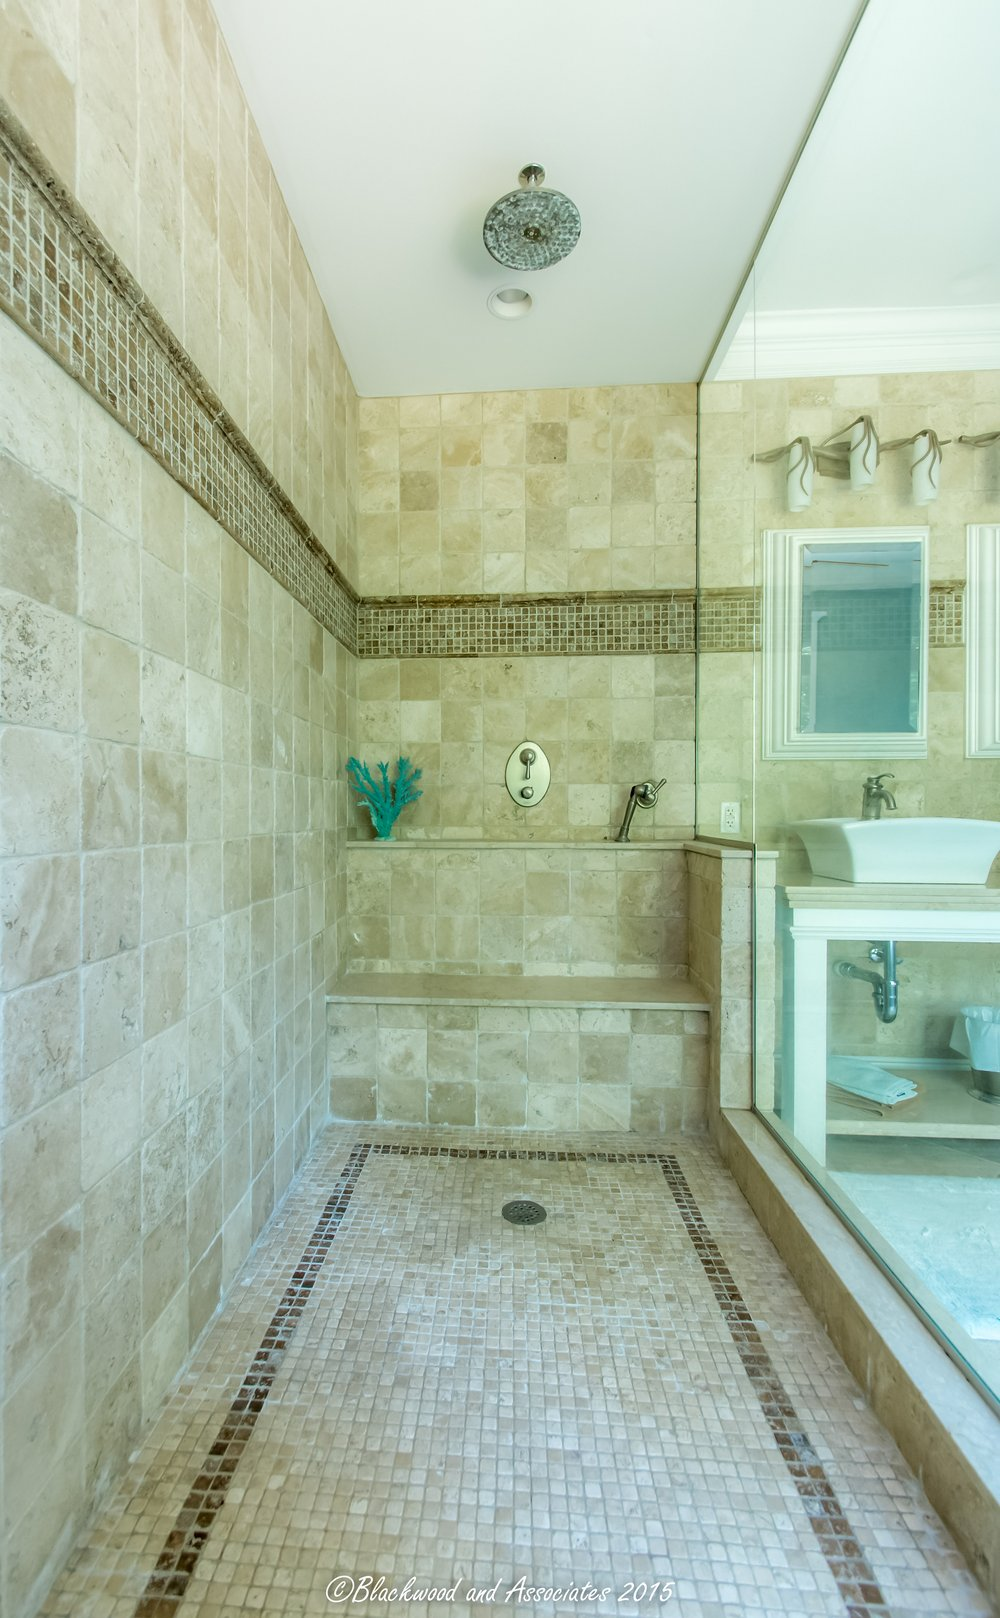 Canonsburg, PA bathroom remodel design and construction